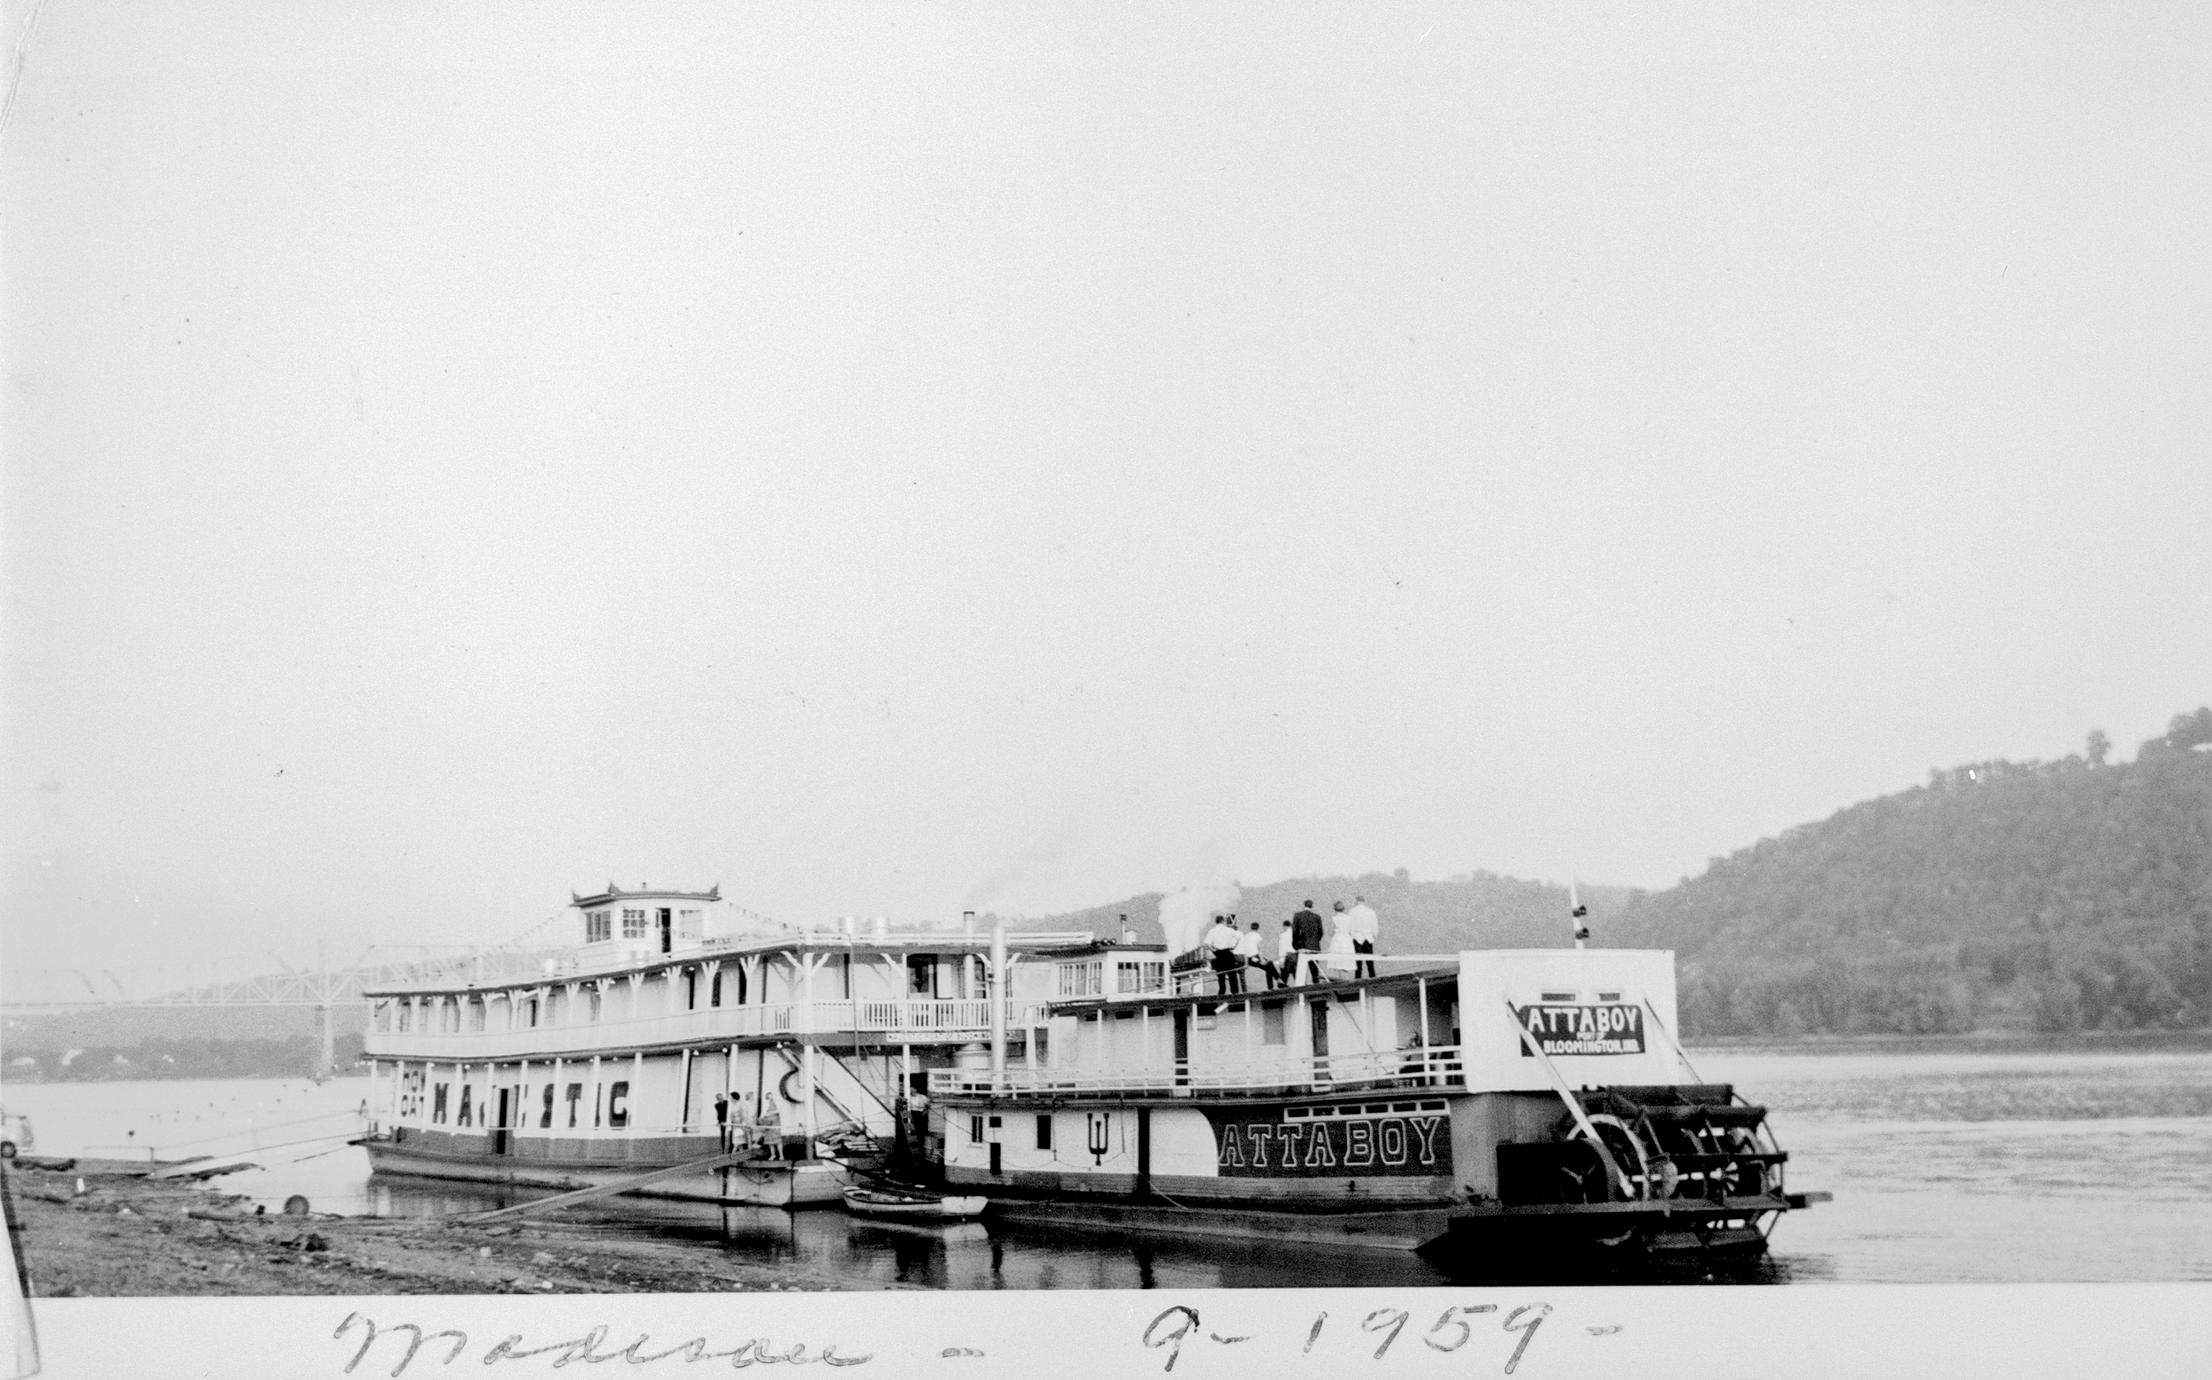 Attaboy (Towboat, 1923-?)